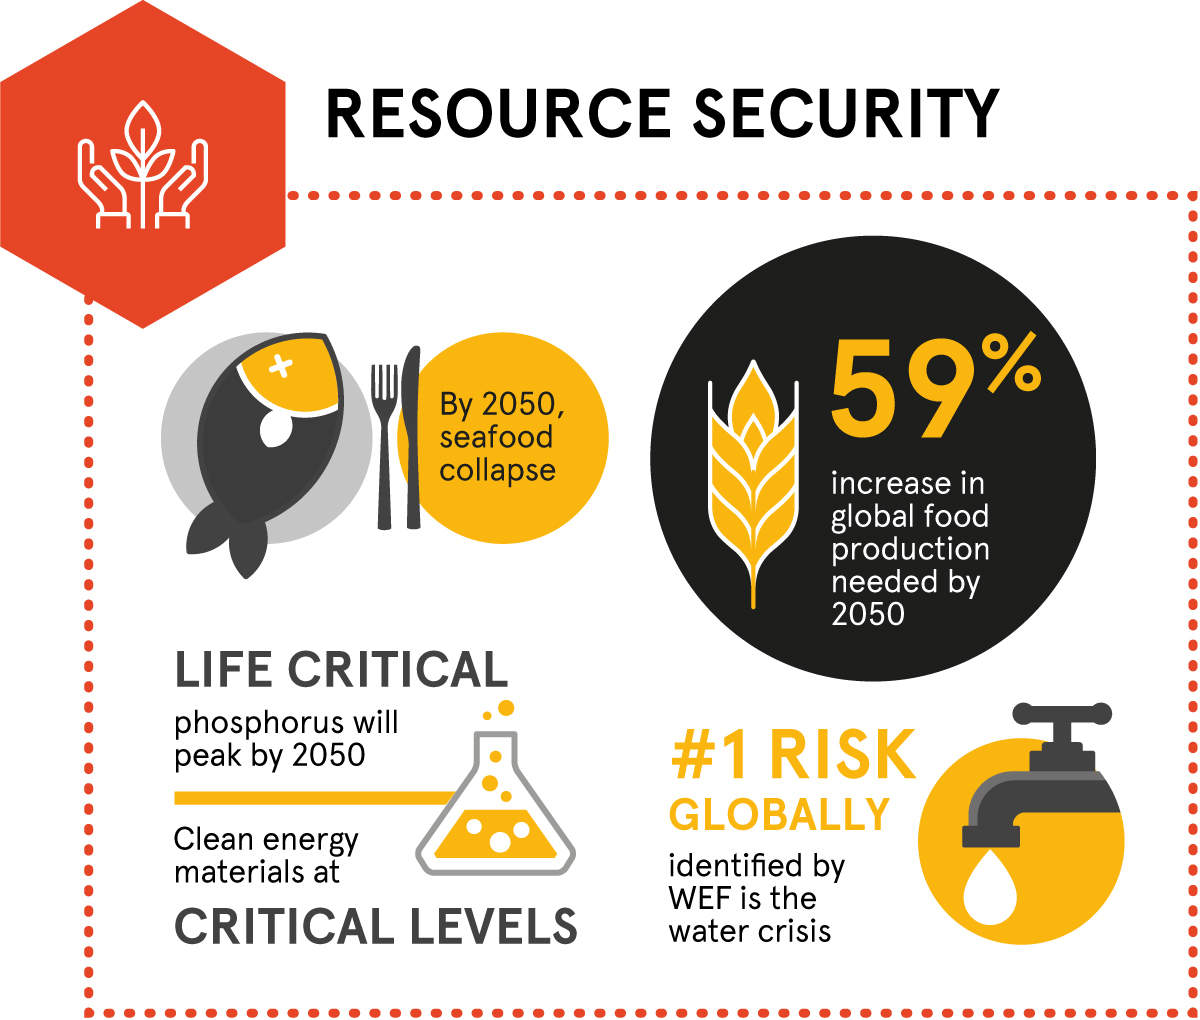 Megatrends – resource security. By 2050, seafood collapse. 59% increase in global food production needed by 2050. Life critical phosphorous peak by 2050. Clean energy materials at critical levels. #1 risk globally identified by WEF is the water crisis.